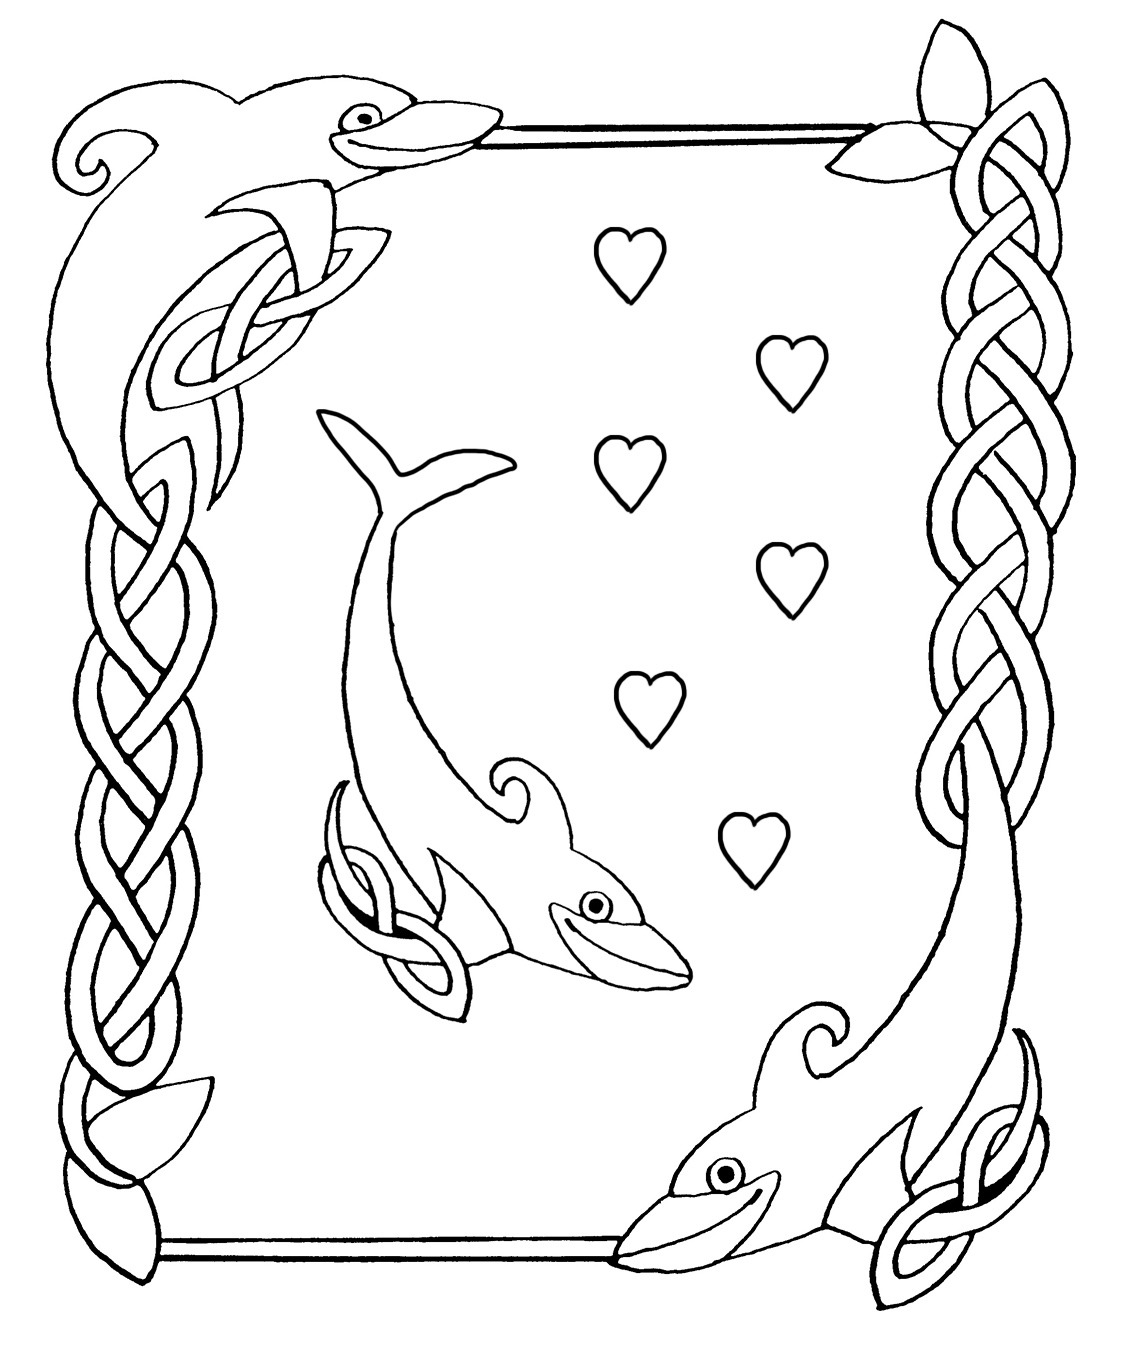 Free coloring pages dolphins - Dolphins Blowing Hearts